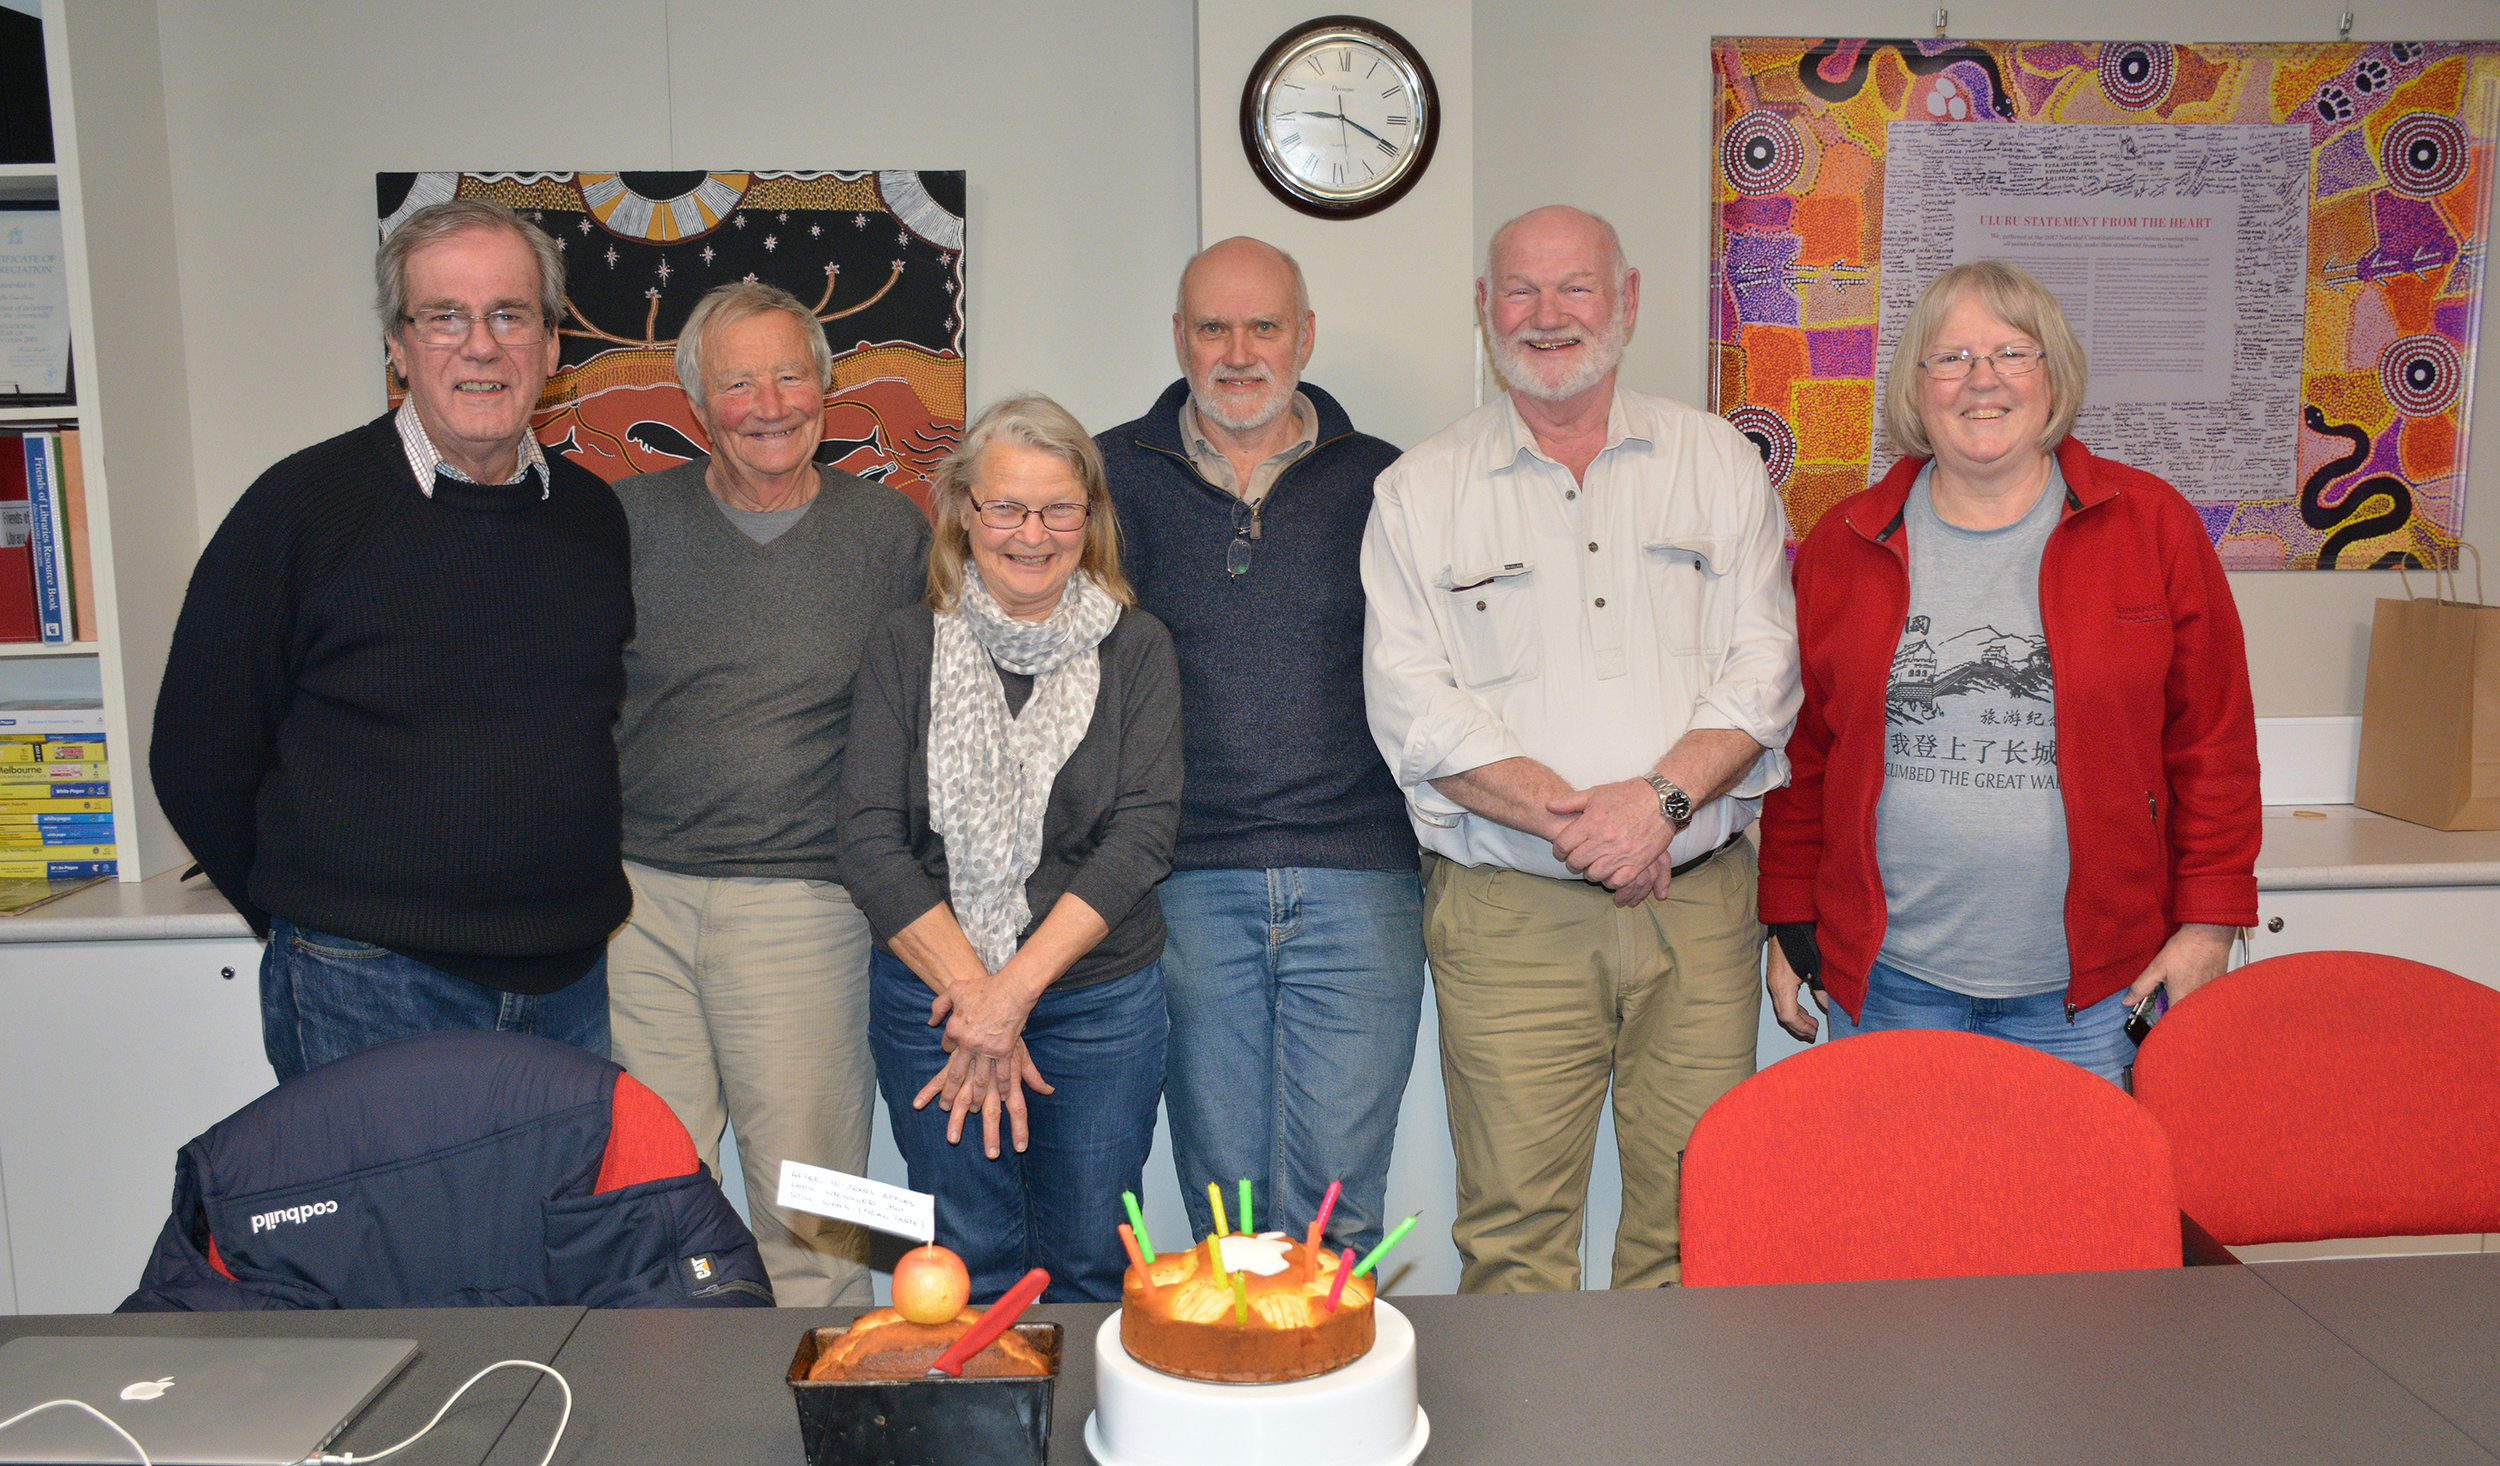 eMug celebrated 10 years this July since our first meeting in 2009. Paul, Wolf, Sue, Peter, Errol and Mem about to enjoy some Apple cakes! Photo by iChaz